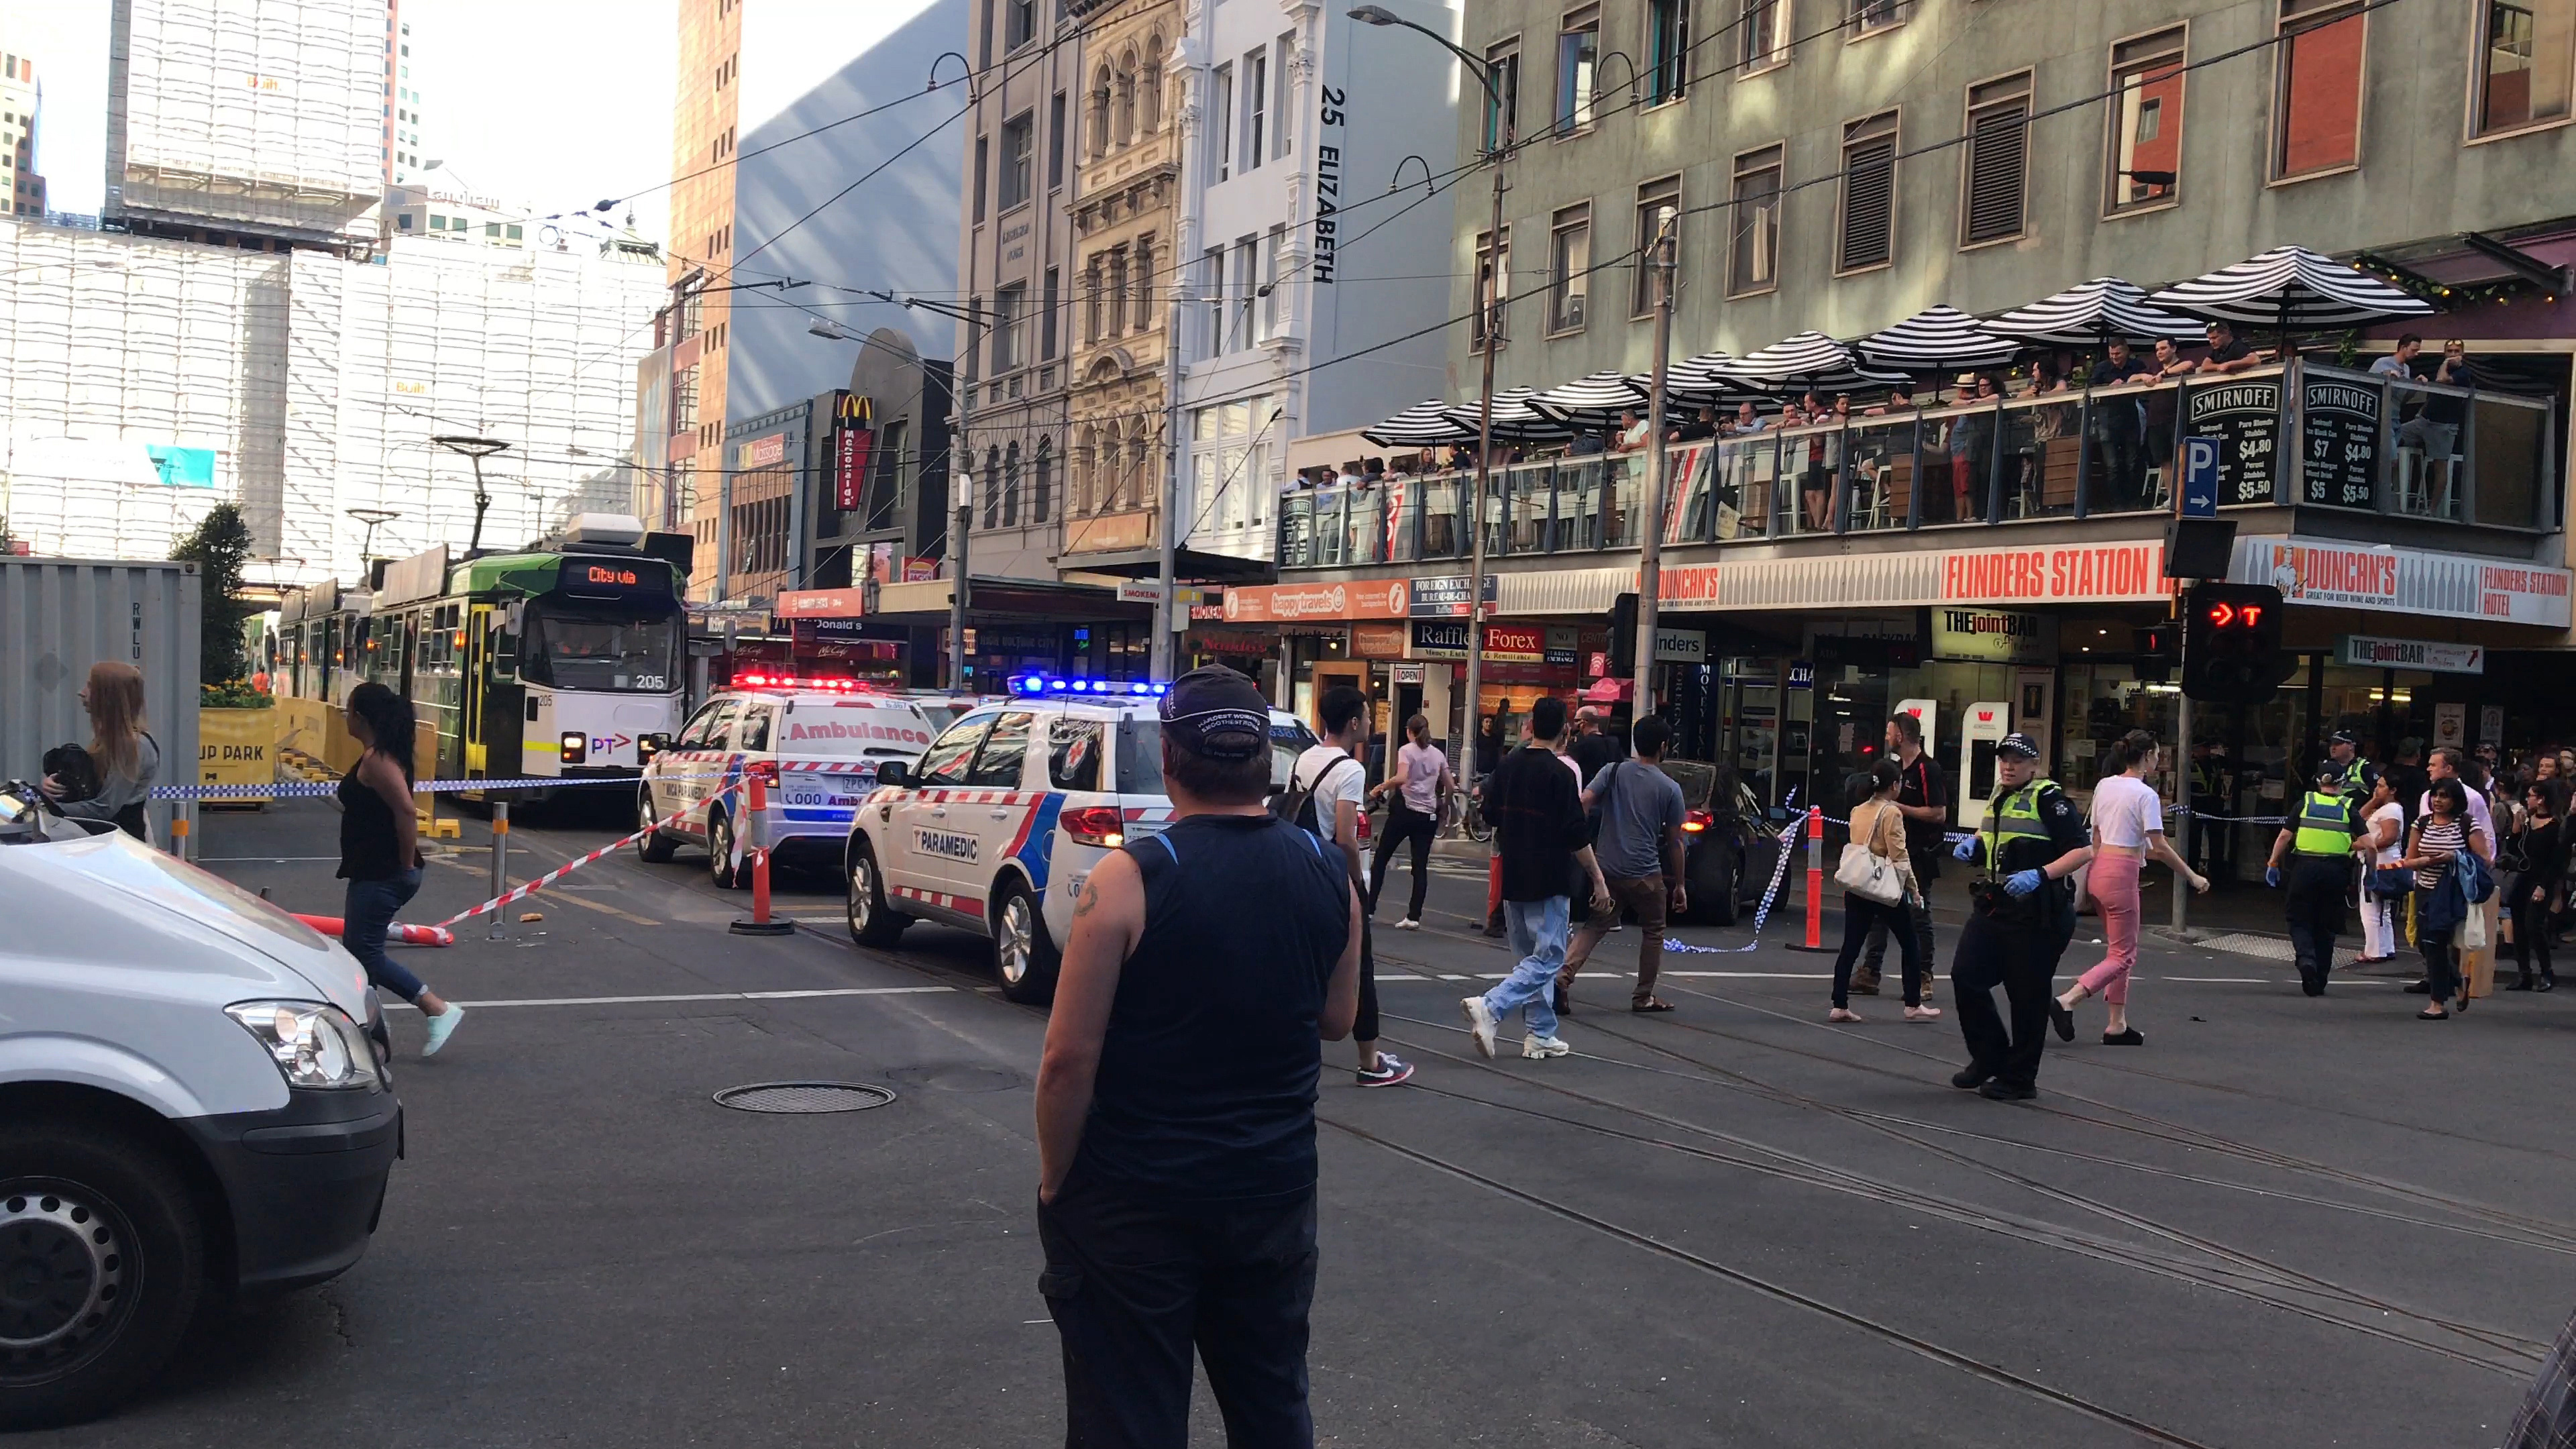 <div class='meta'><div class='origin-logo' data-origin='none'></div><span class='caption-text' data-credit='Kaitlyn Offer/AAP Image via AP'>Pedestrians walk past as police and emergency services attend the scene of an incident involving a vehicle and pedestrians in Melbourne, Thursday, Dec. 21, 2017.</span></div>